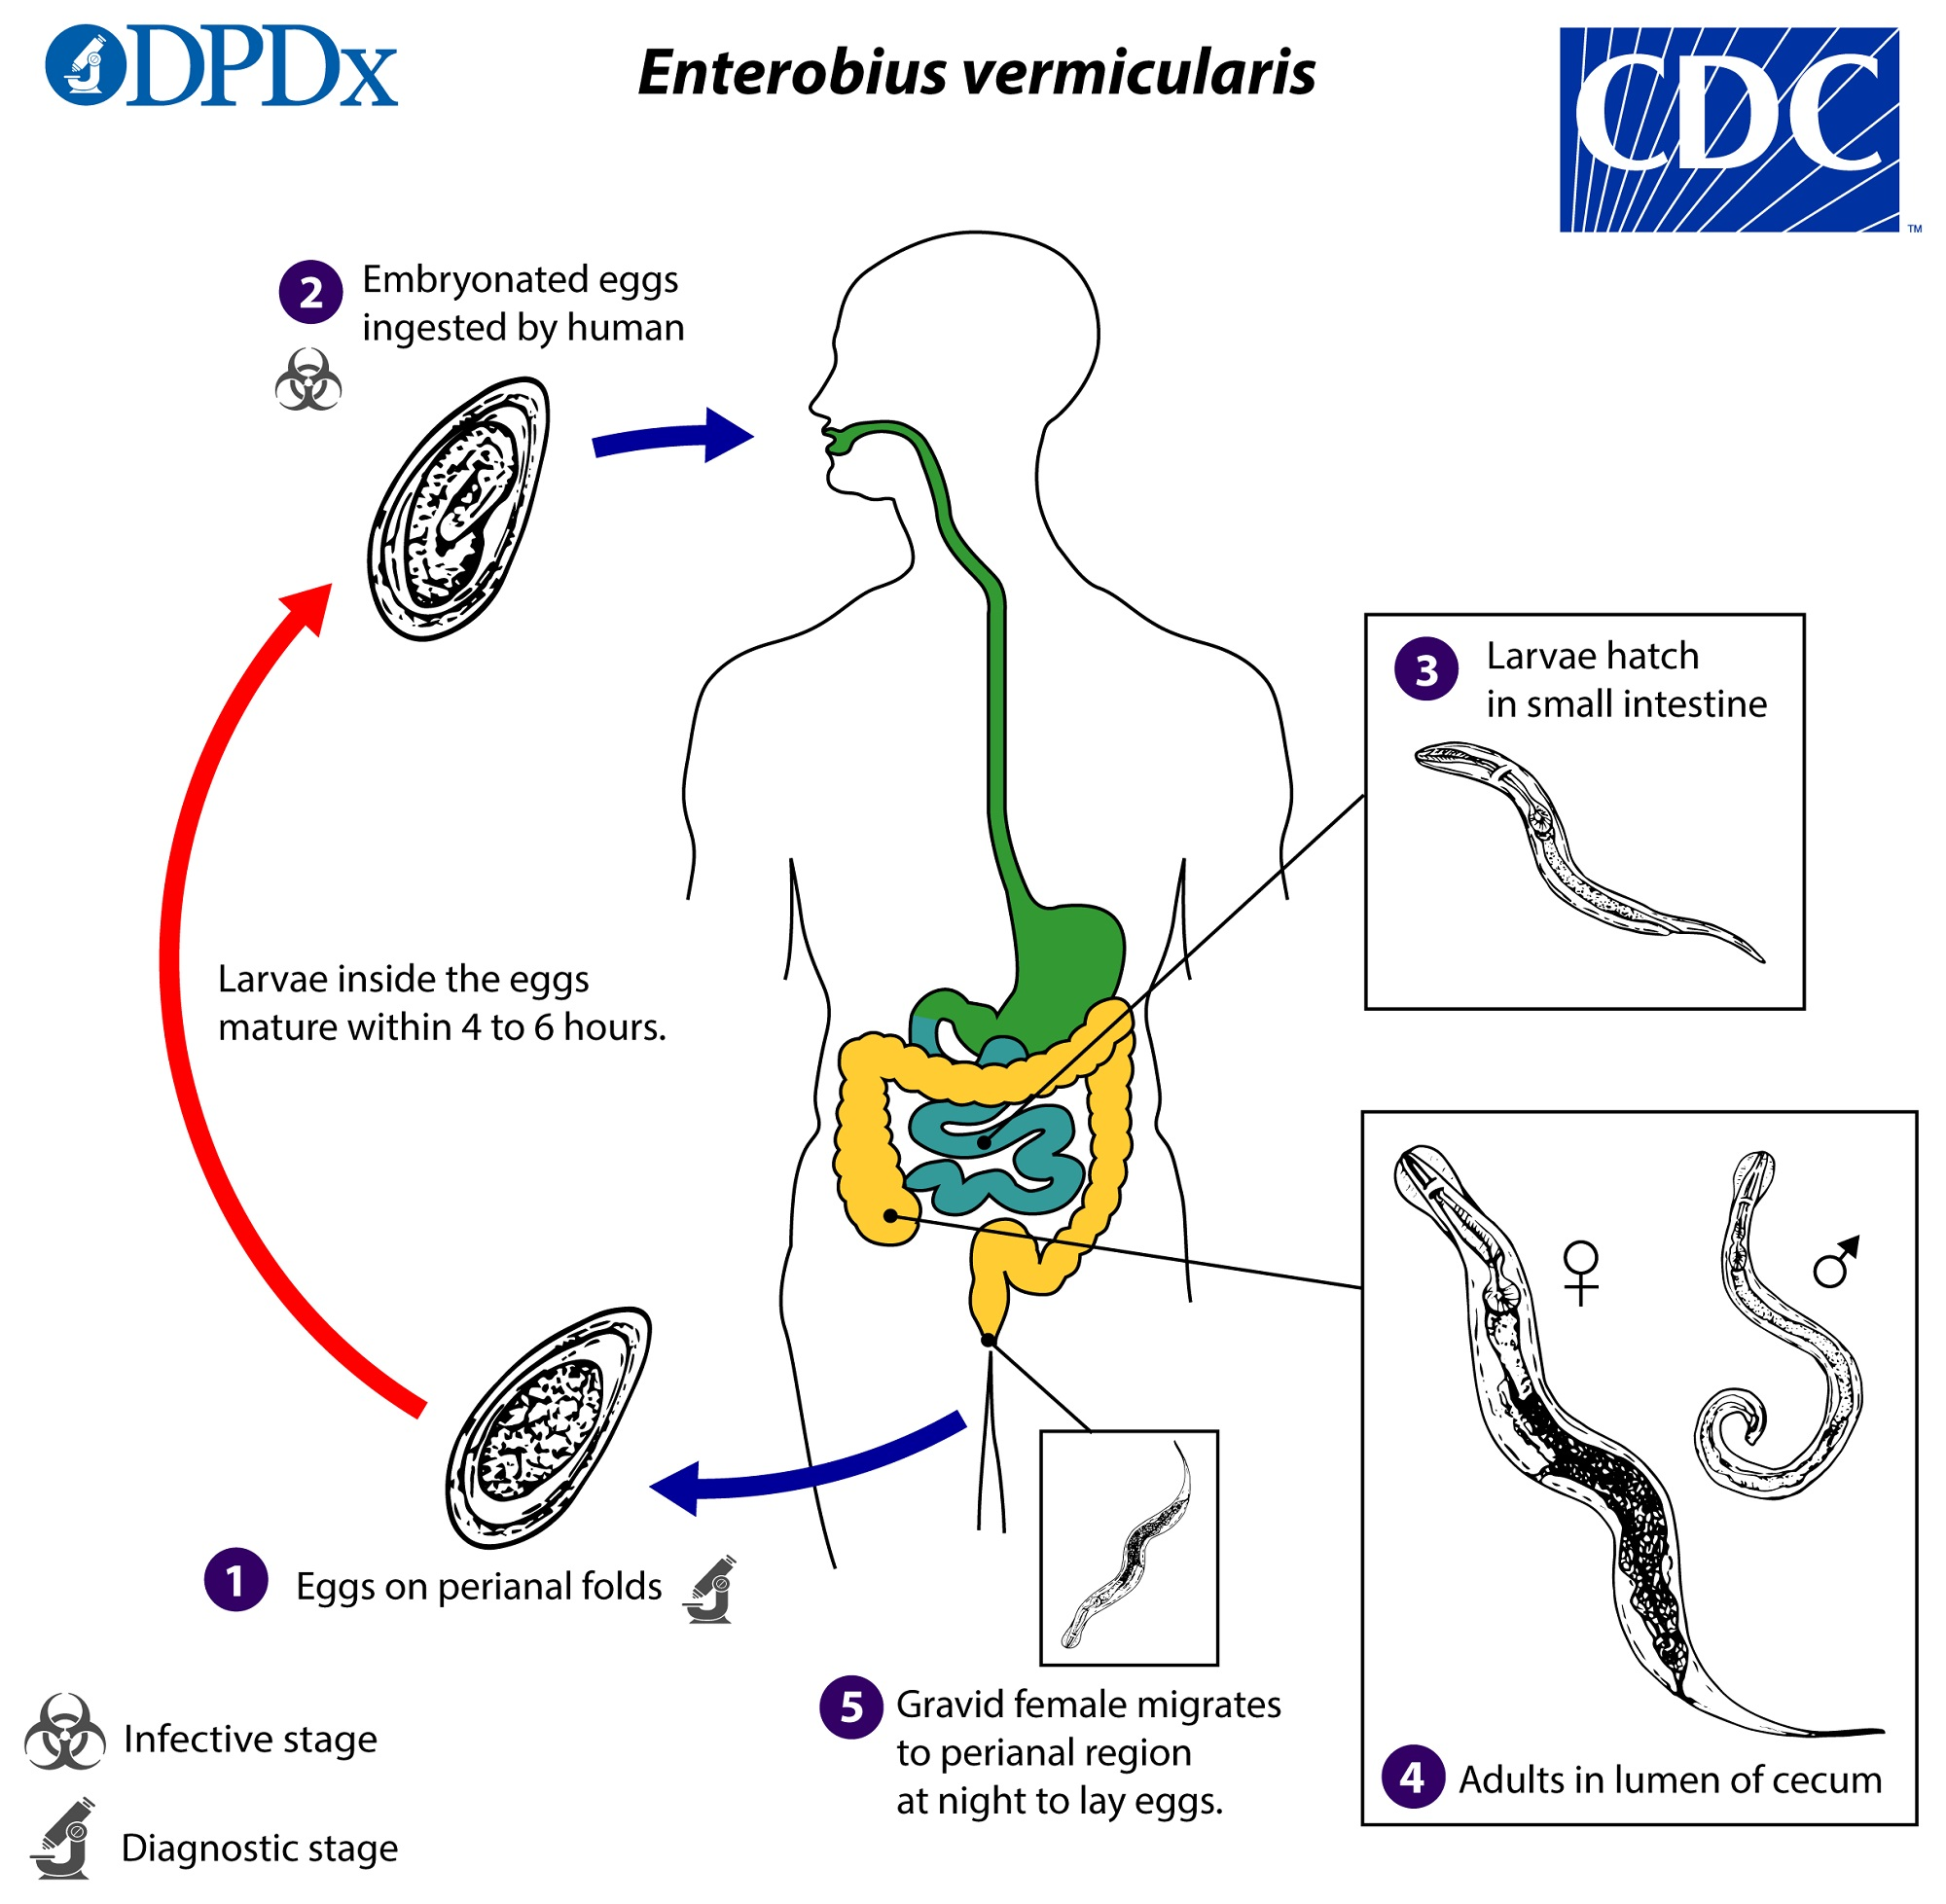 enterobius vermicularis behandeling